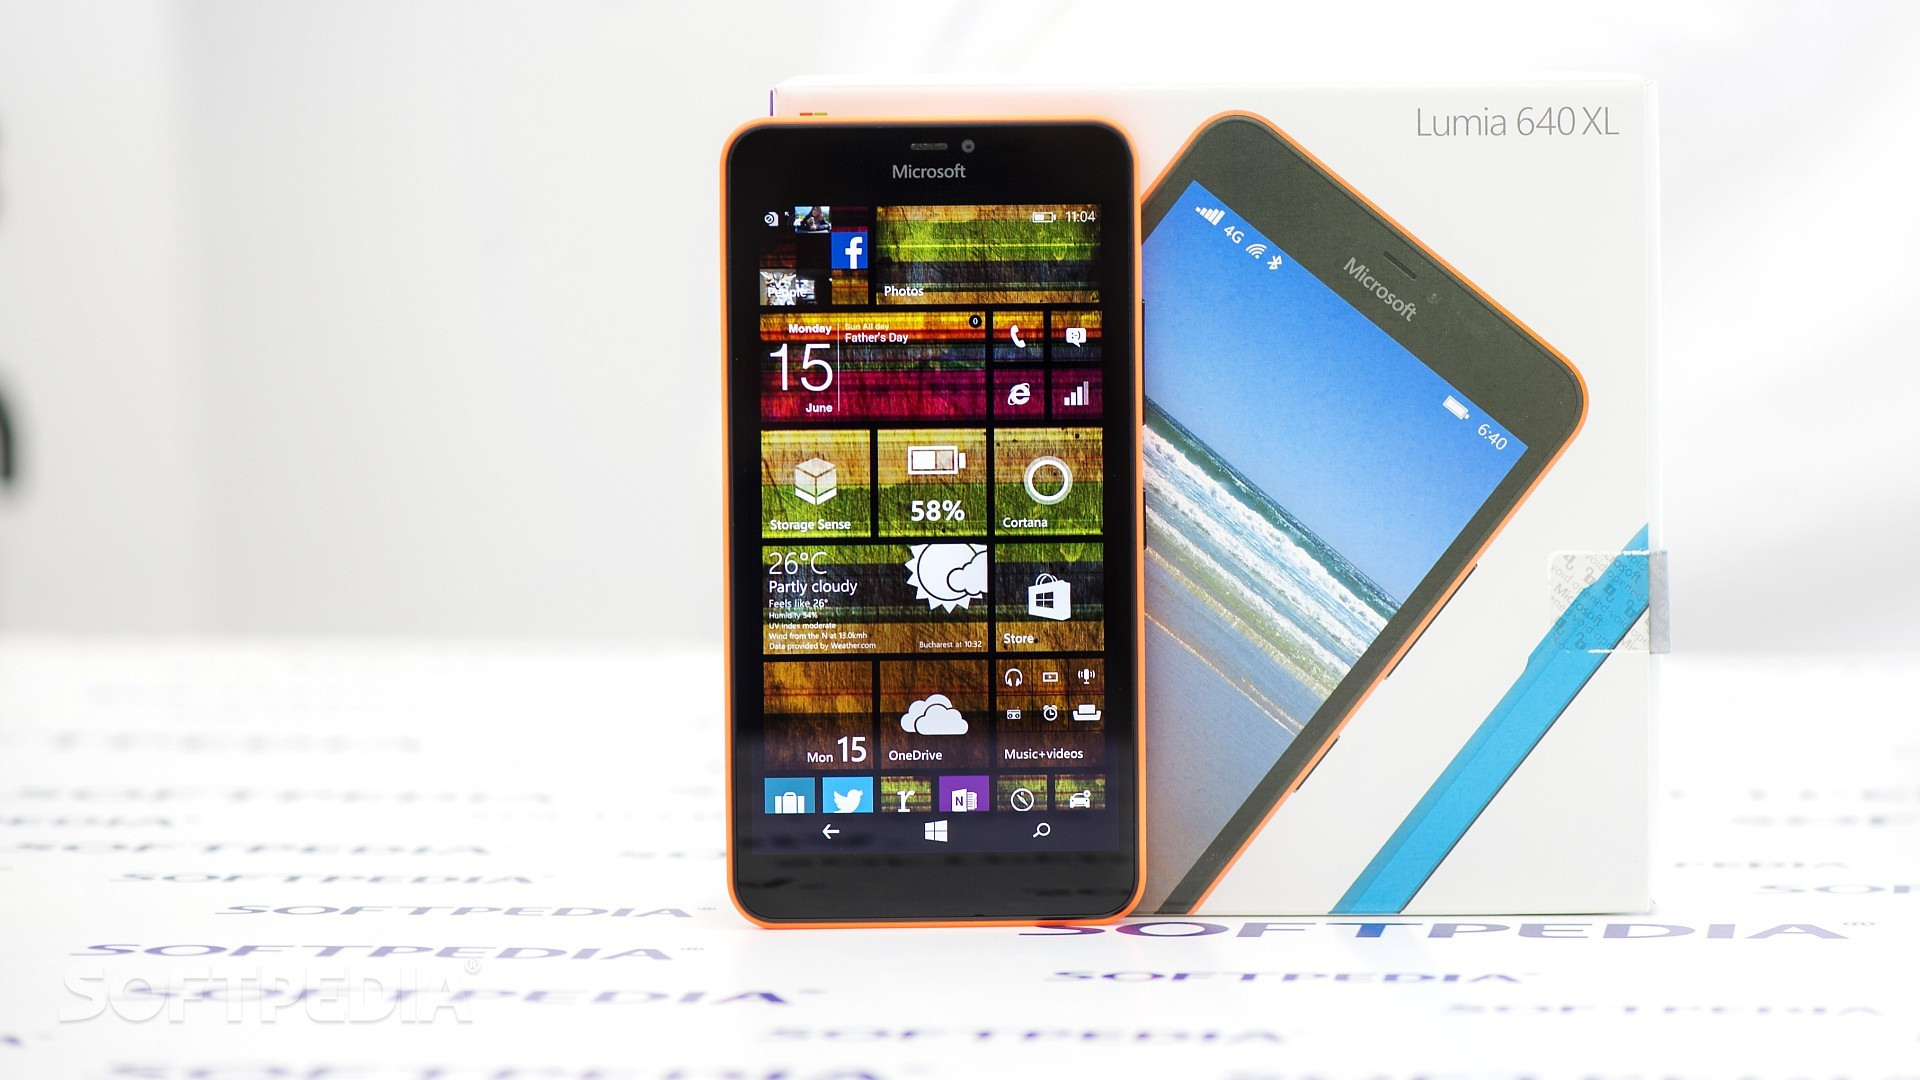 Microsoft: Windows Phone Is Dead, Users Should Move to iPhone or Android